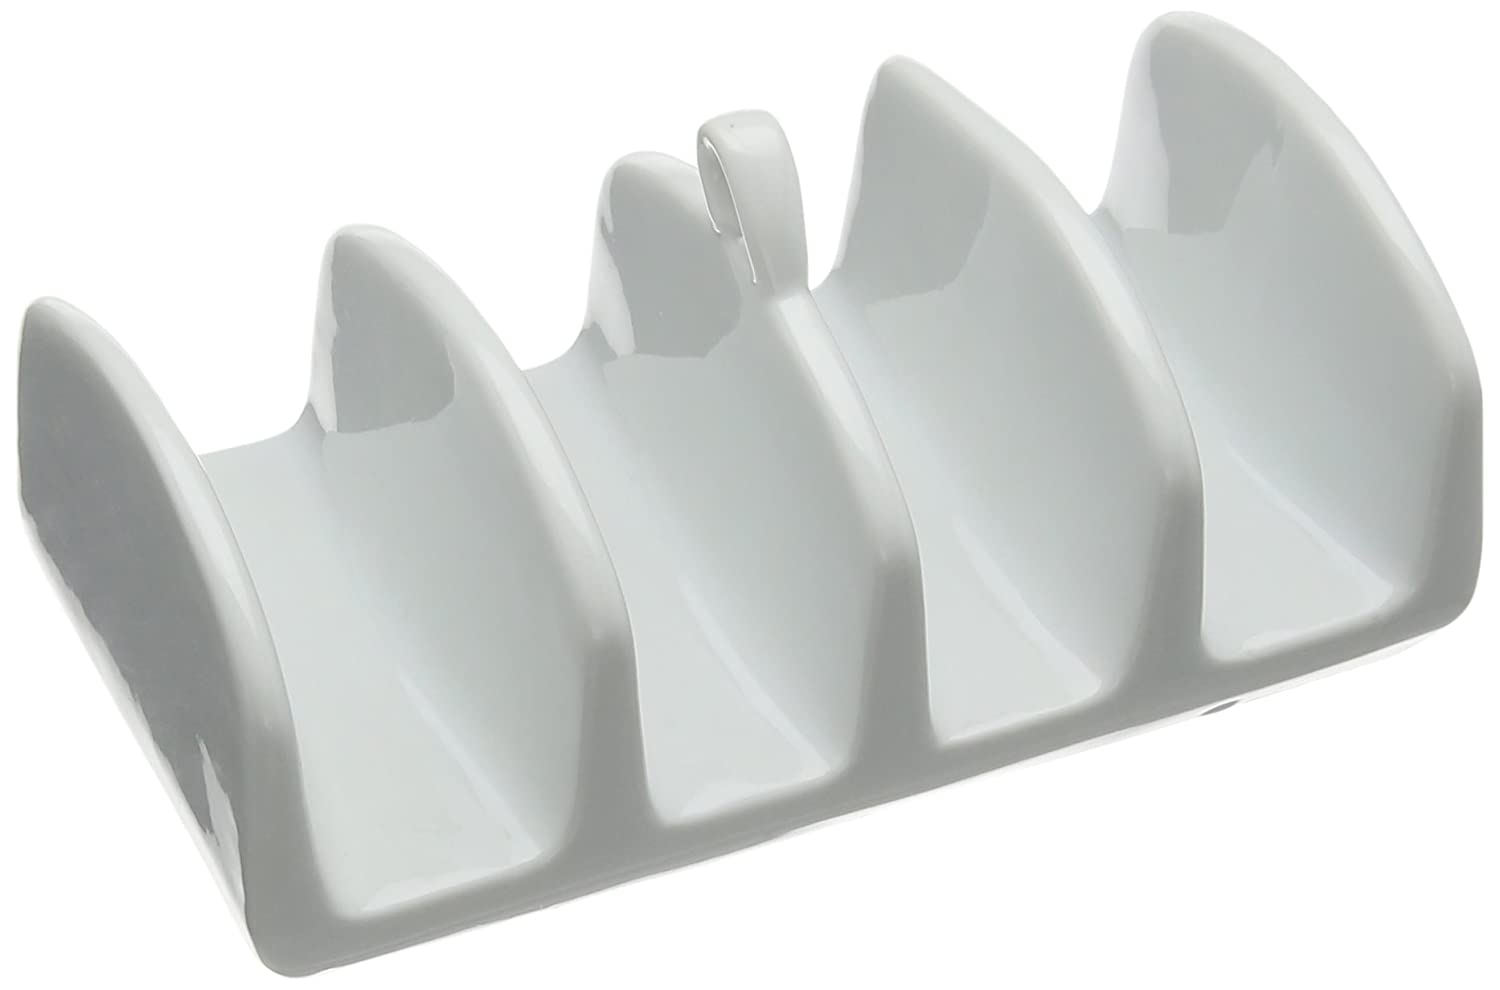 Price and Kensington Simplicity Toast and Crumpet Rack, Porcelain, White, 0059.423